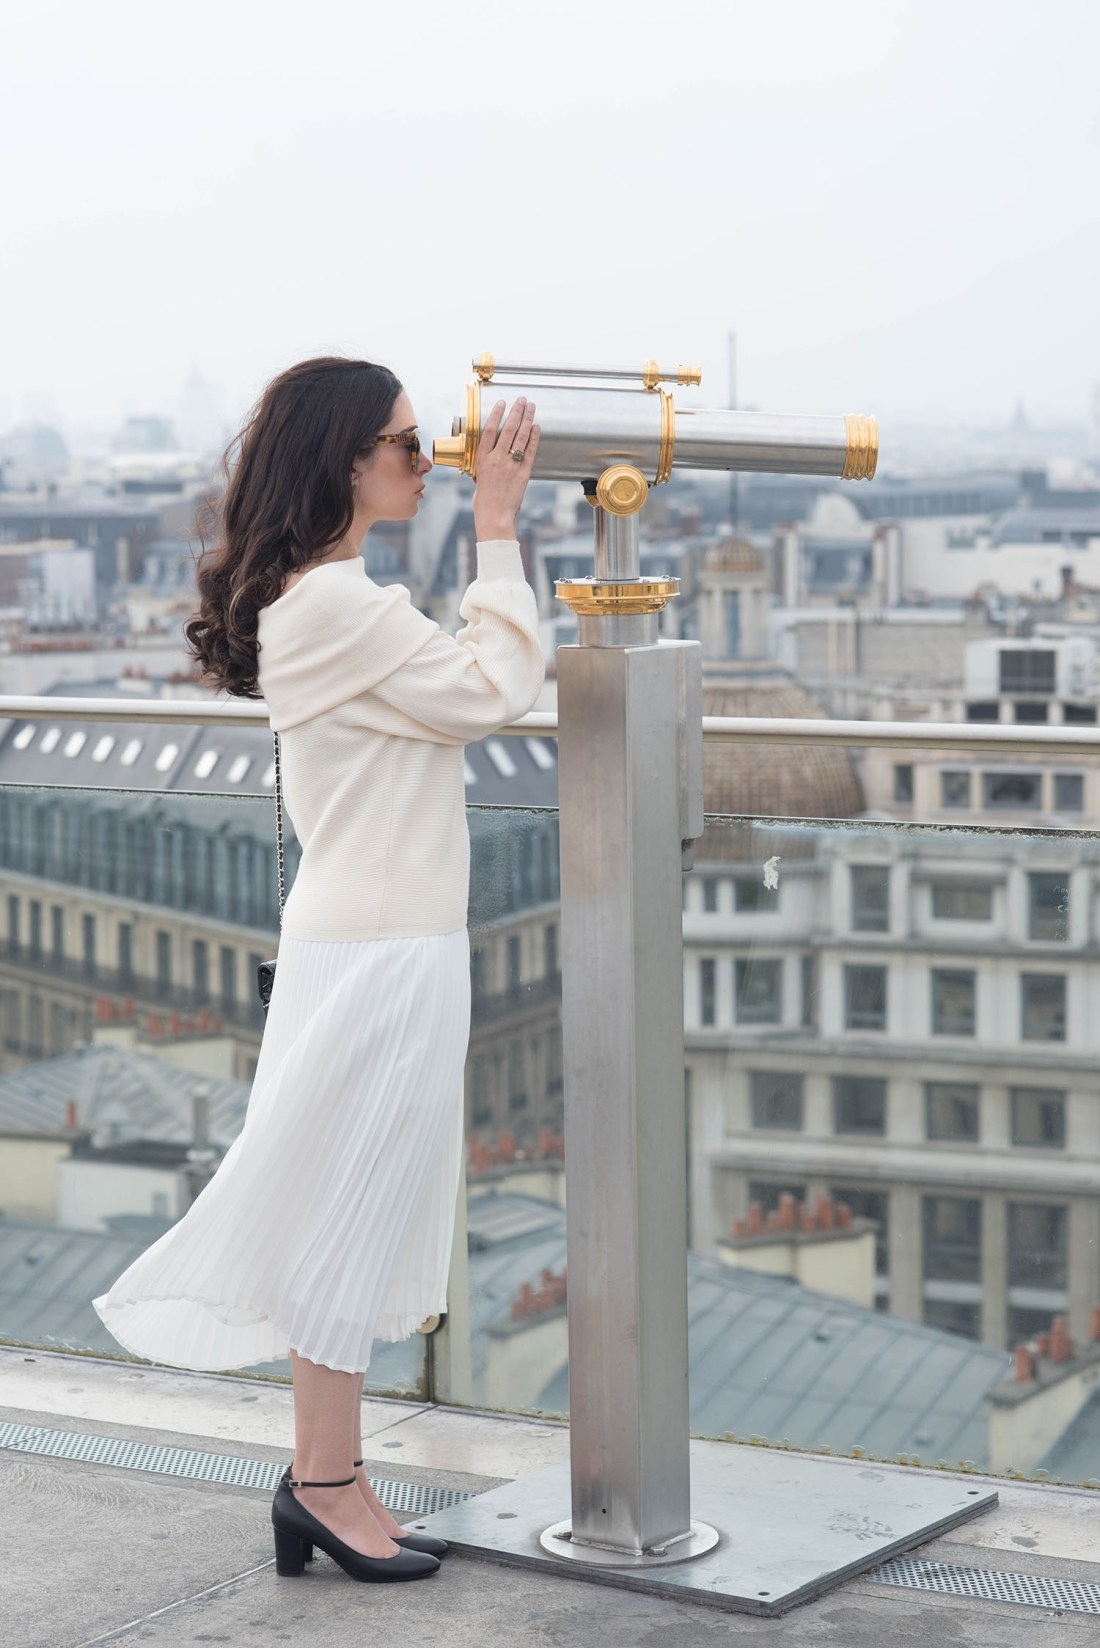 Fashion blogger Cee Fardoe of Coco & Vera stands on Paris rooftop looking out a telescope wearing a Zara sweater and Aritzia pleated skirt